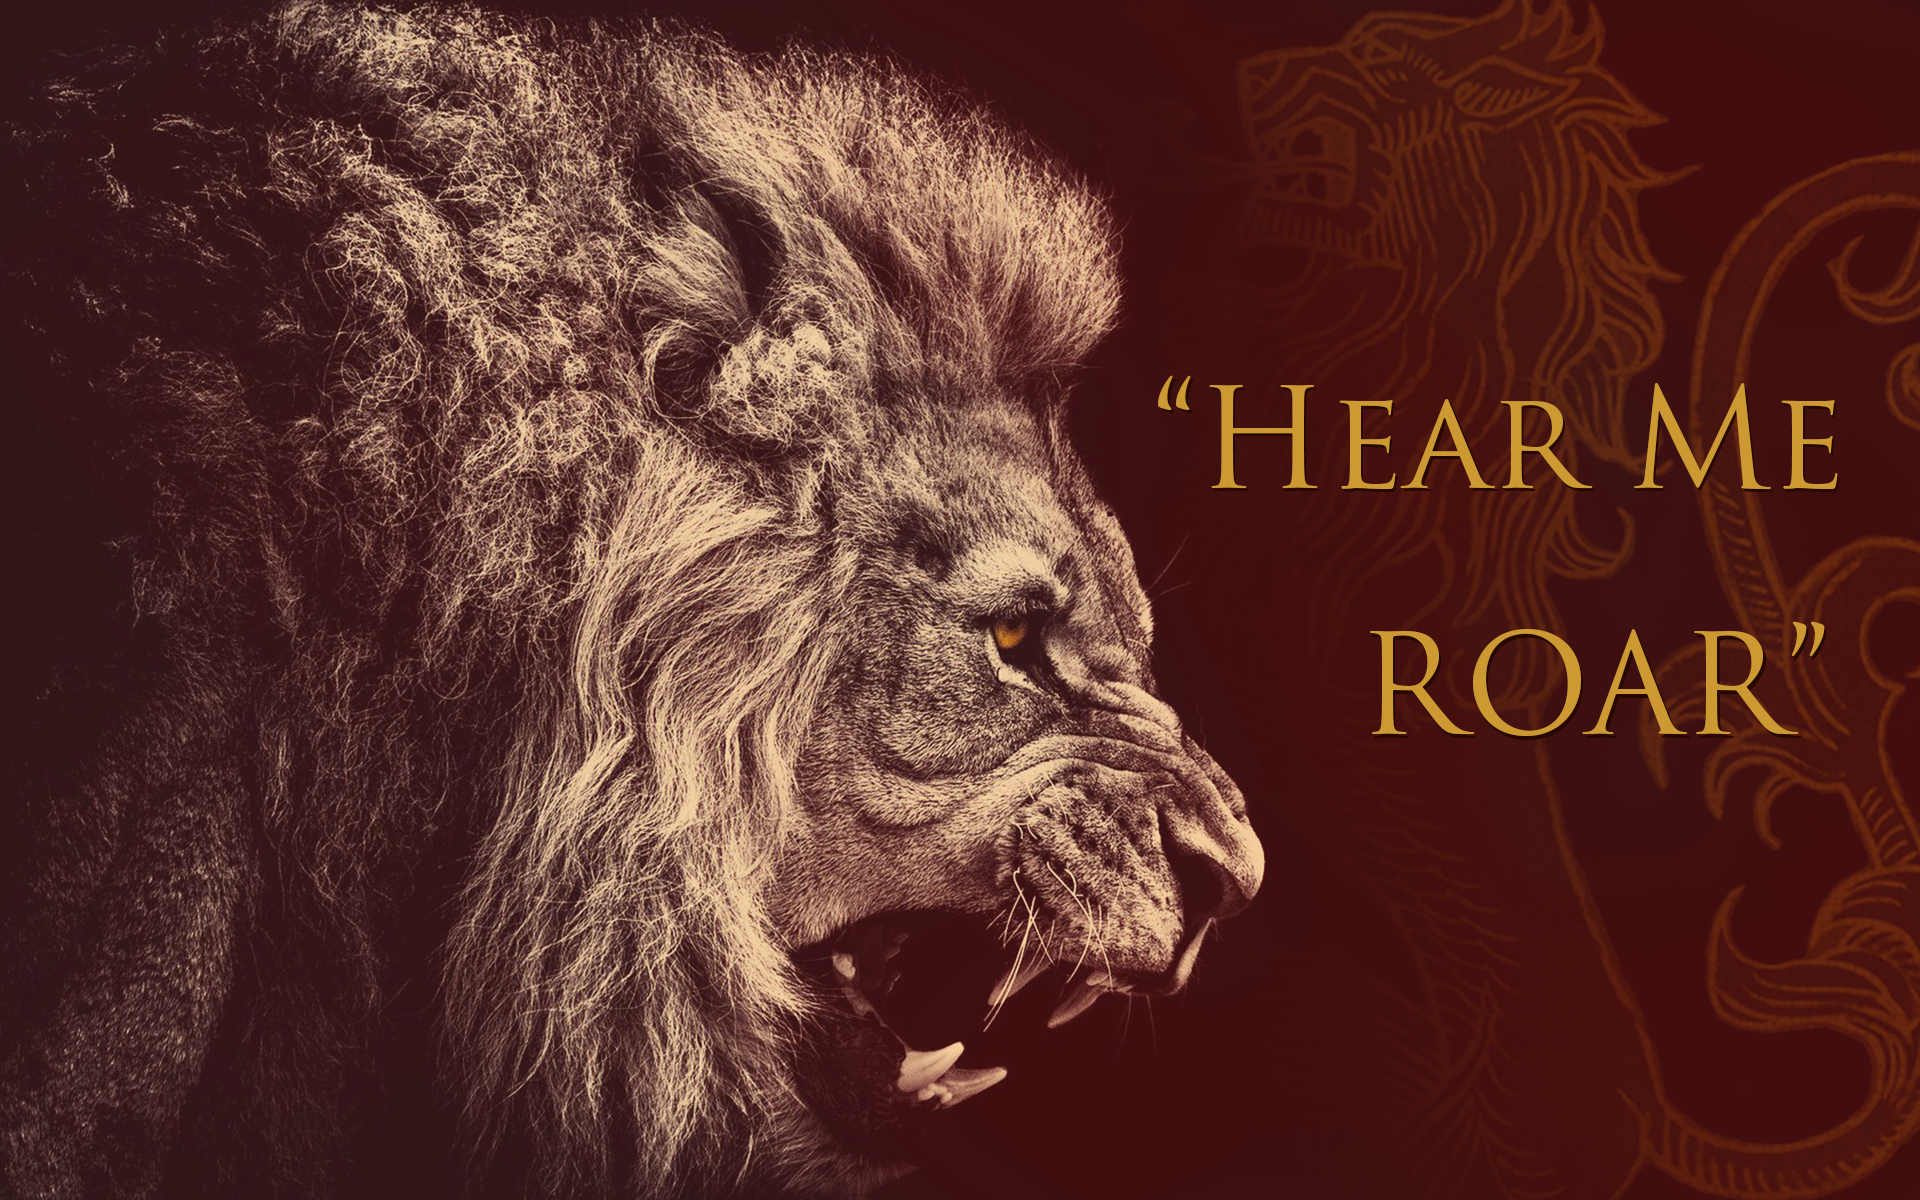 House-Lannister-game-of-thrones-32847483-1920-1200